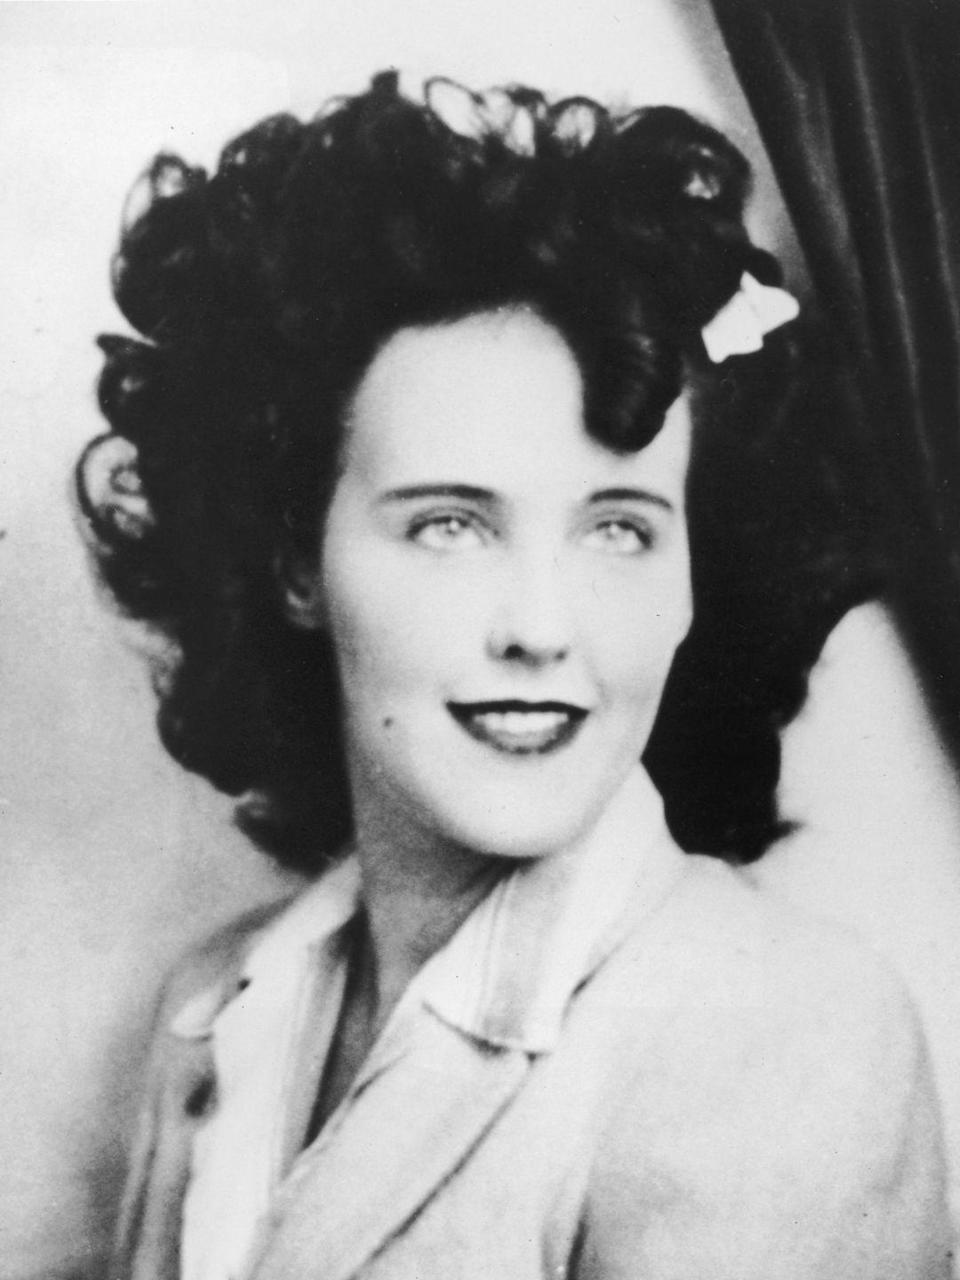 "<p>Hollywood is known to harbor plenty of dark and disturbing secrets, but the murder of The Black Dahlia is the stuff of Hollywood legend. <a href=""https://www.fbi.gov/history/famous-cases/the-black-dahlia"" rel=""nofollow noopener"" target=""_blank"" data-ylk=""slk:According to the FBI"" class=""link rapid-noclick-resp"">According to the FBI</a>, ""On the morning of January 15, 1947, a mother taking her child for a walk in a Los Angeles neighborhood stumbled upon a gruesome sight: the body of a young naked woman sliced clean in half at the waist."" The woman who discovered the body believed it was a mannequin at first, as there was hardly any blood on the scene. (continued) </p>"